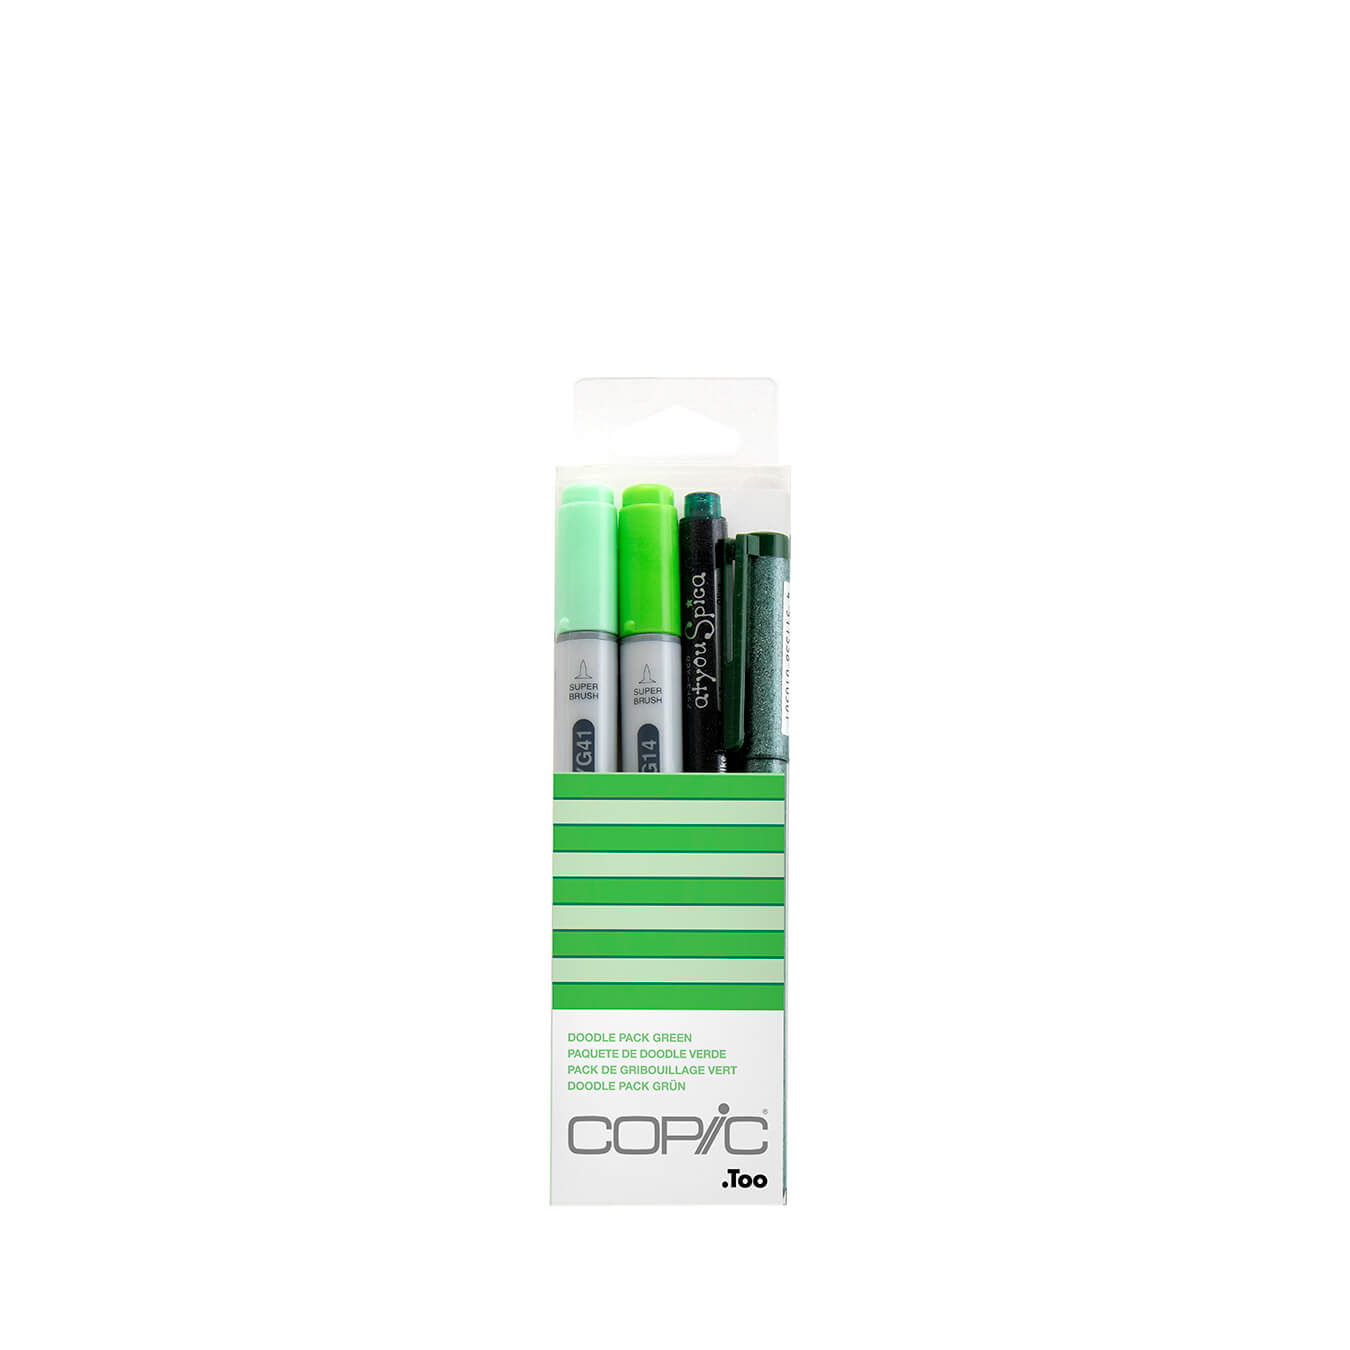 Copic Ciao Doodle pack Green